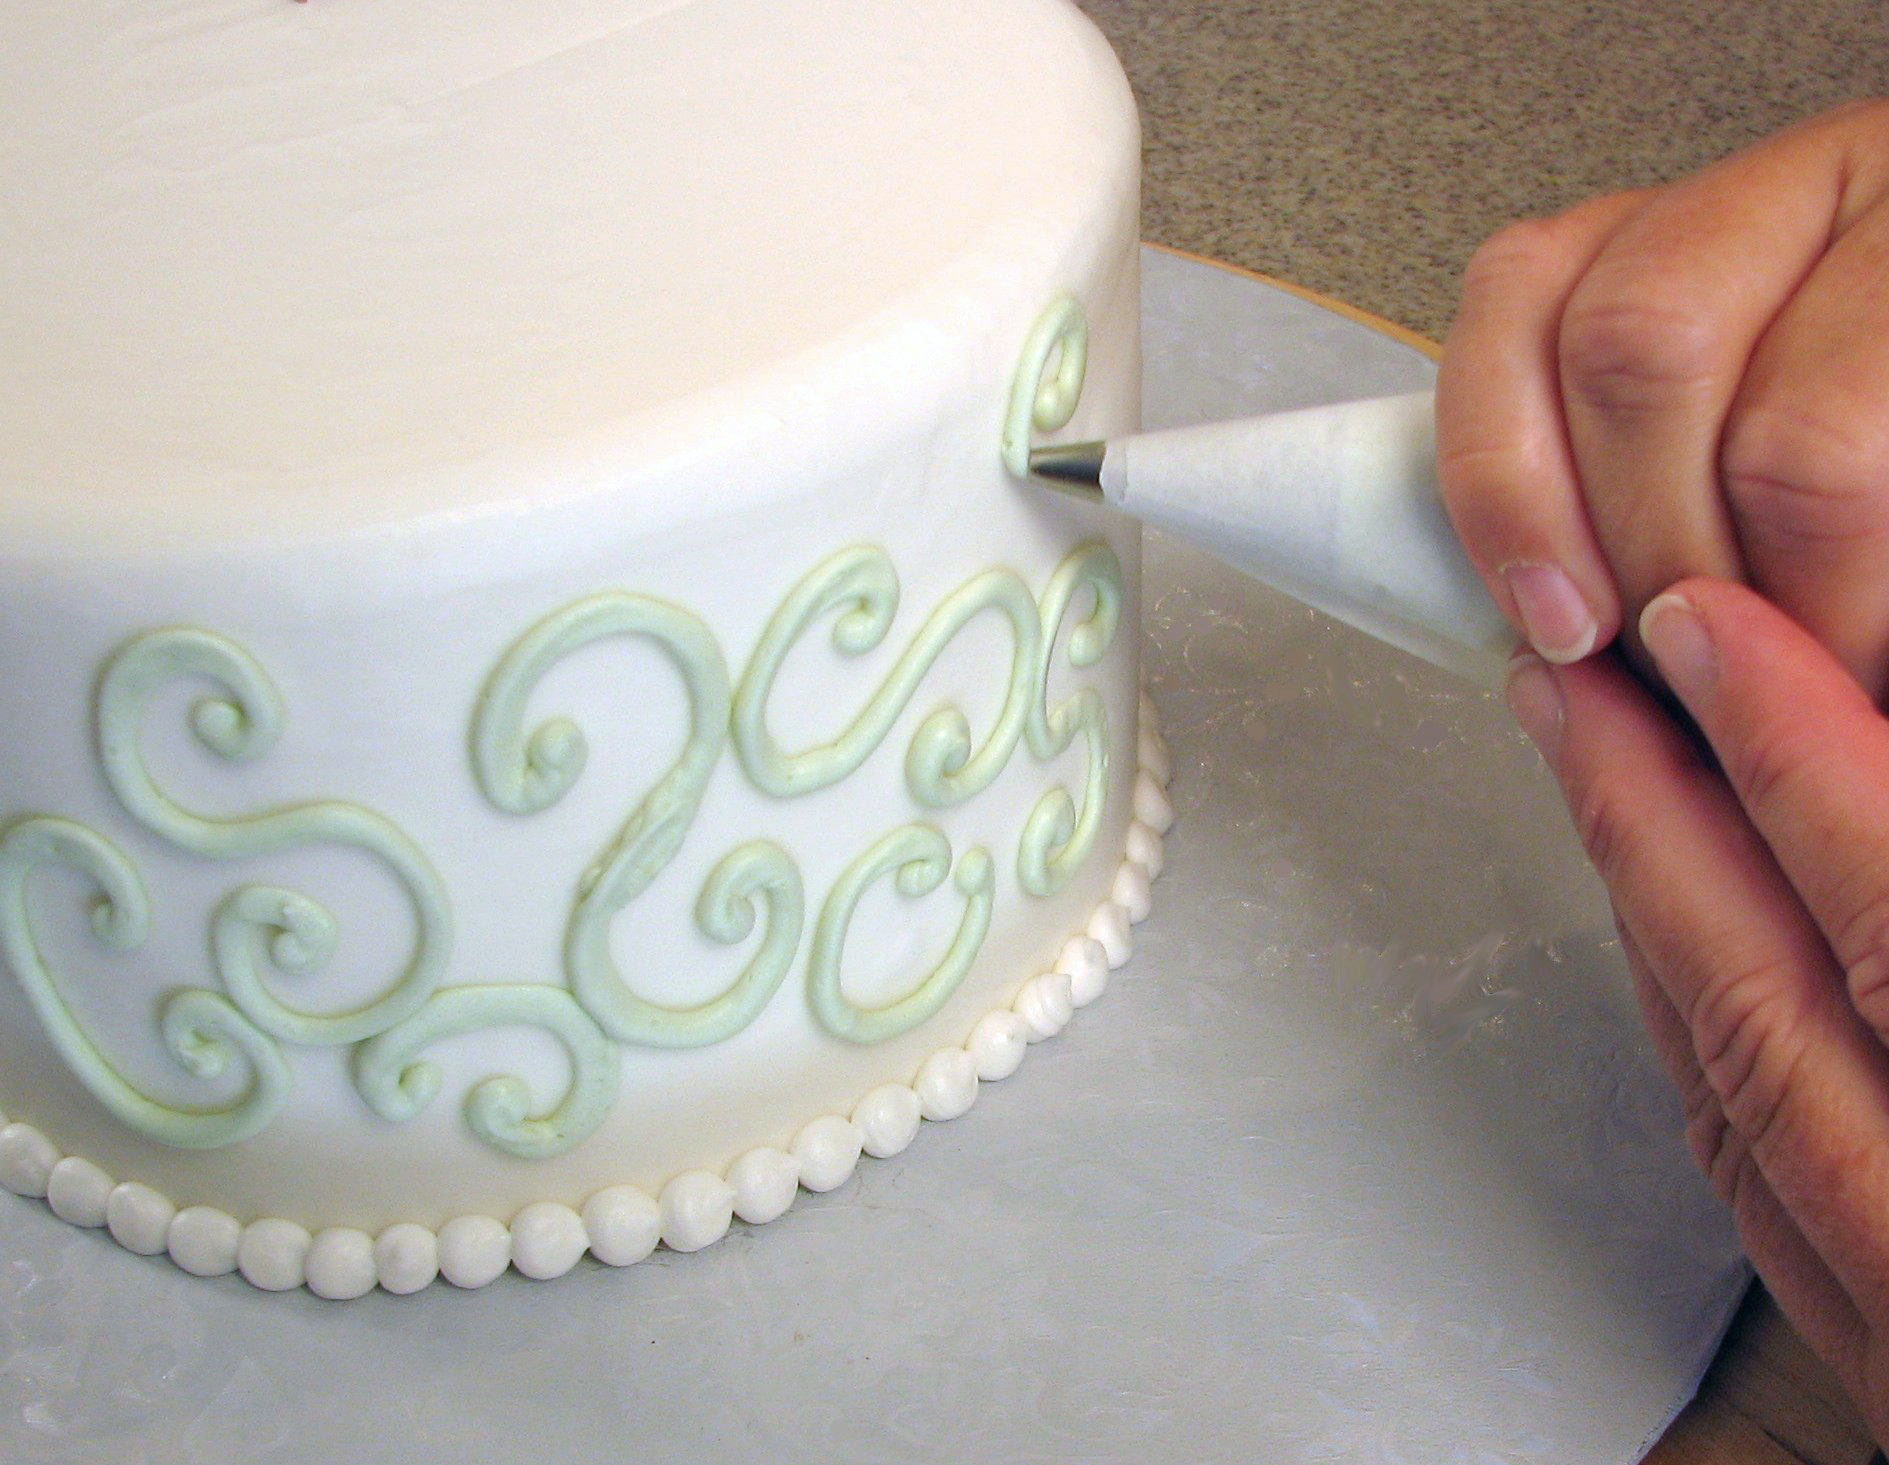 What Cake Decorating Tips Make What : Cake decorating - Wikipedia